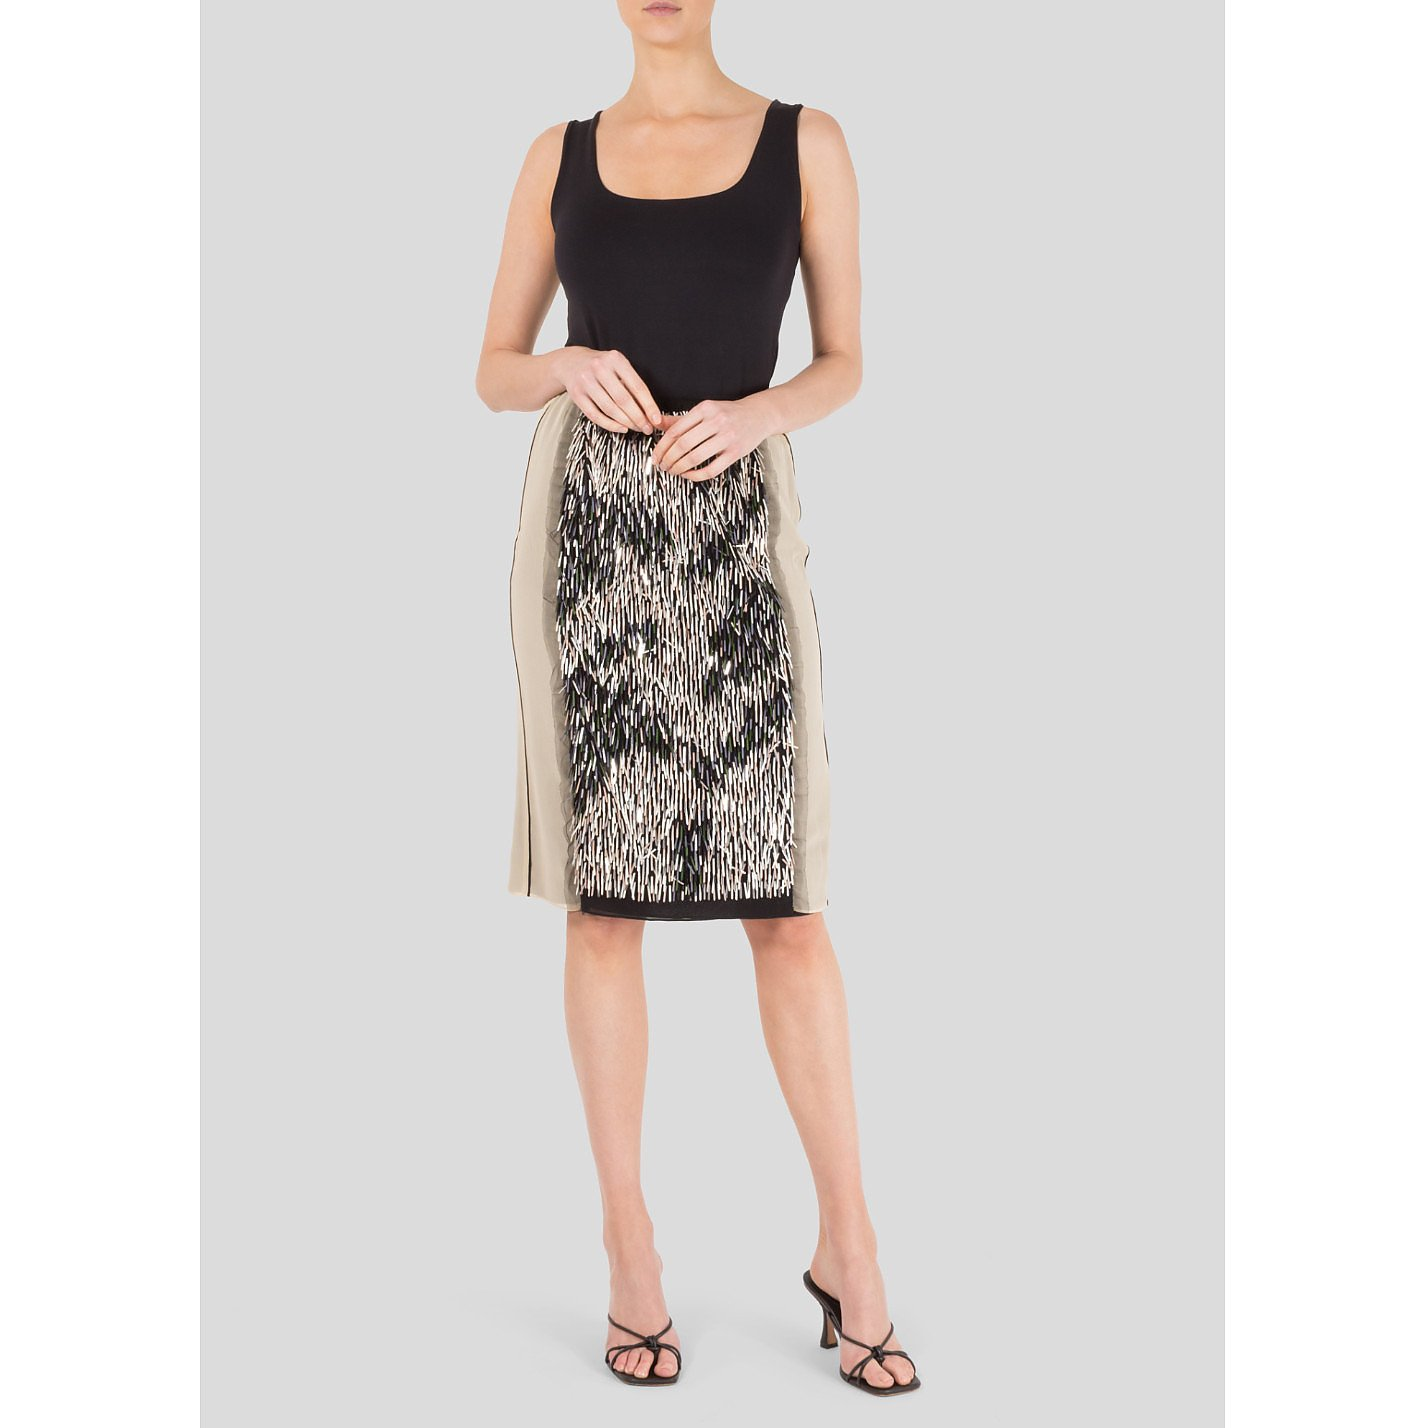 Dorothee Schumacher Sequin Panel Skirt